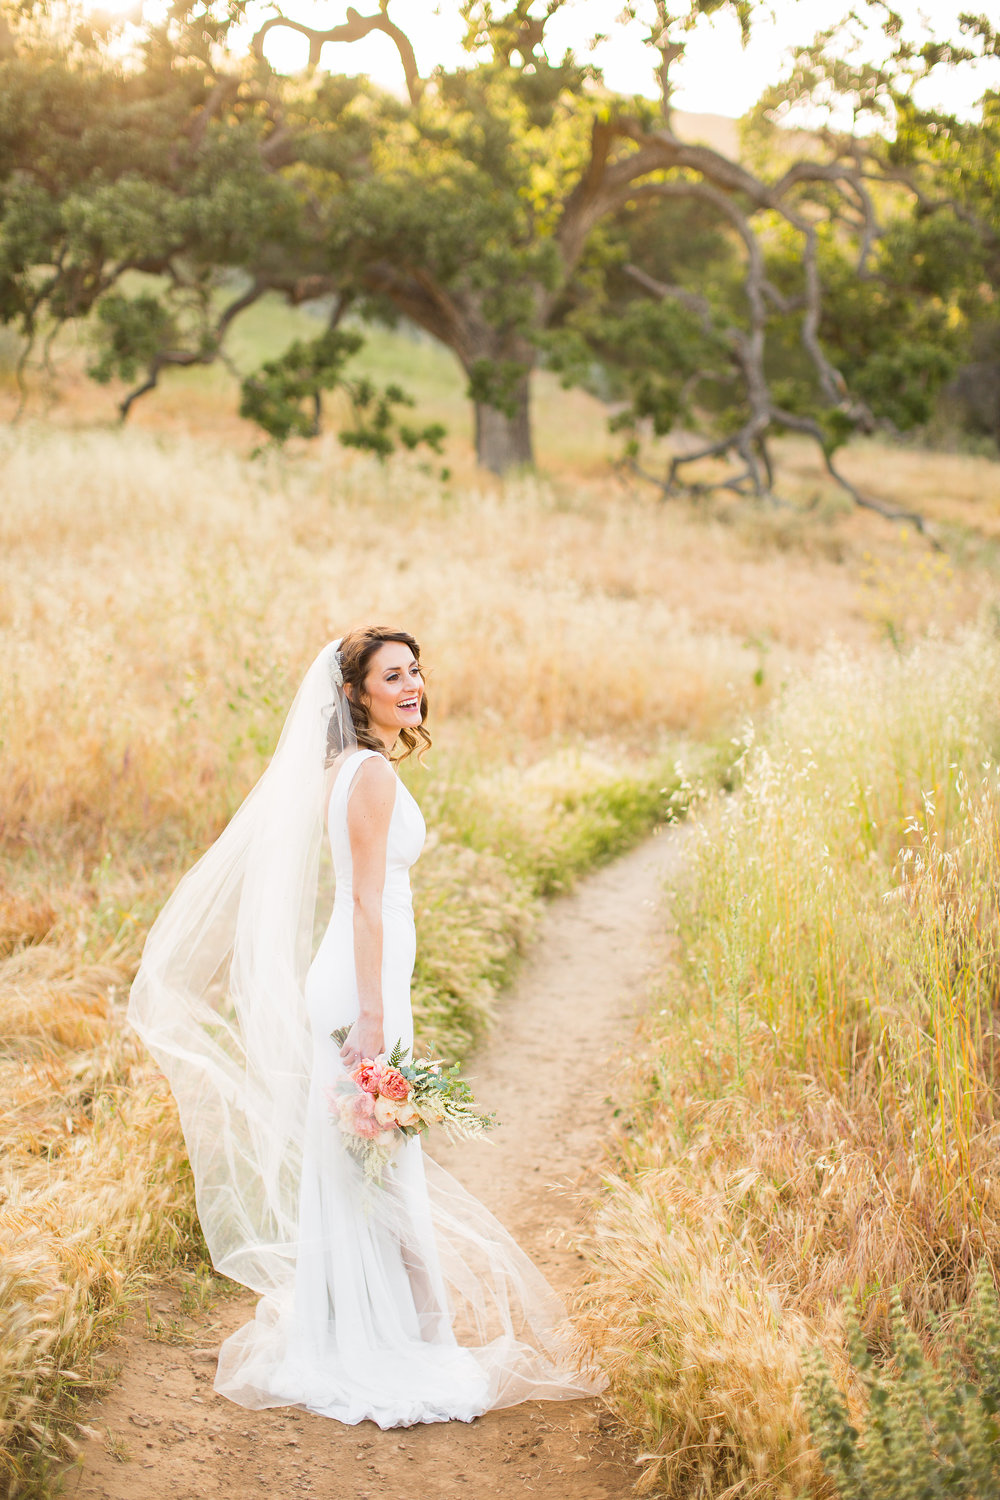 thousand_oaks_wedding_photos-6.jpg